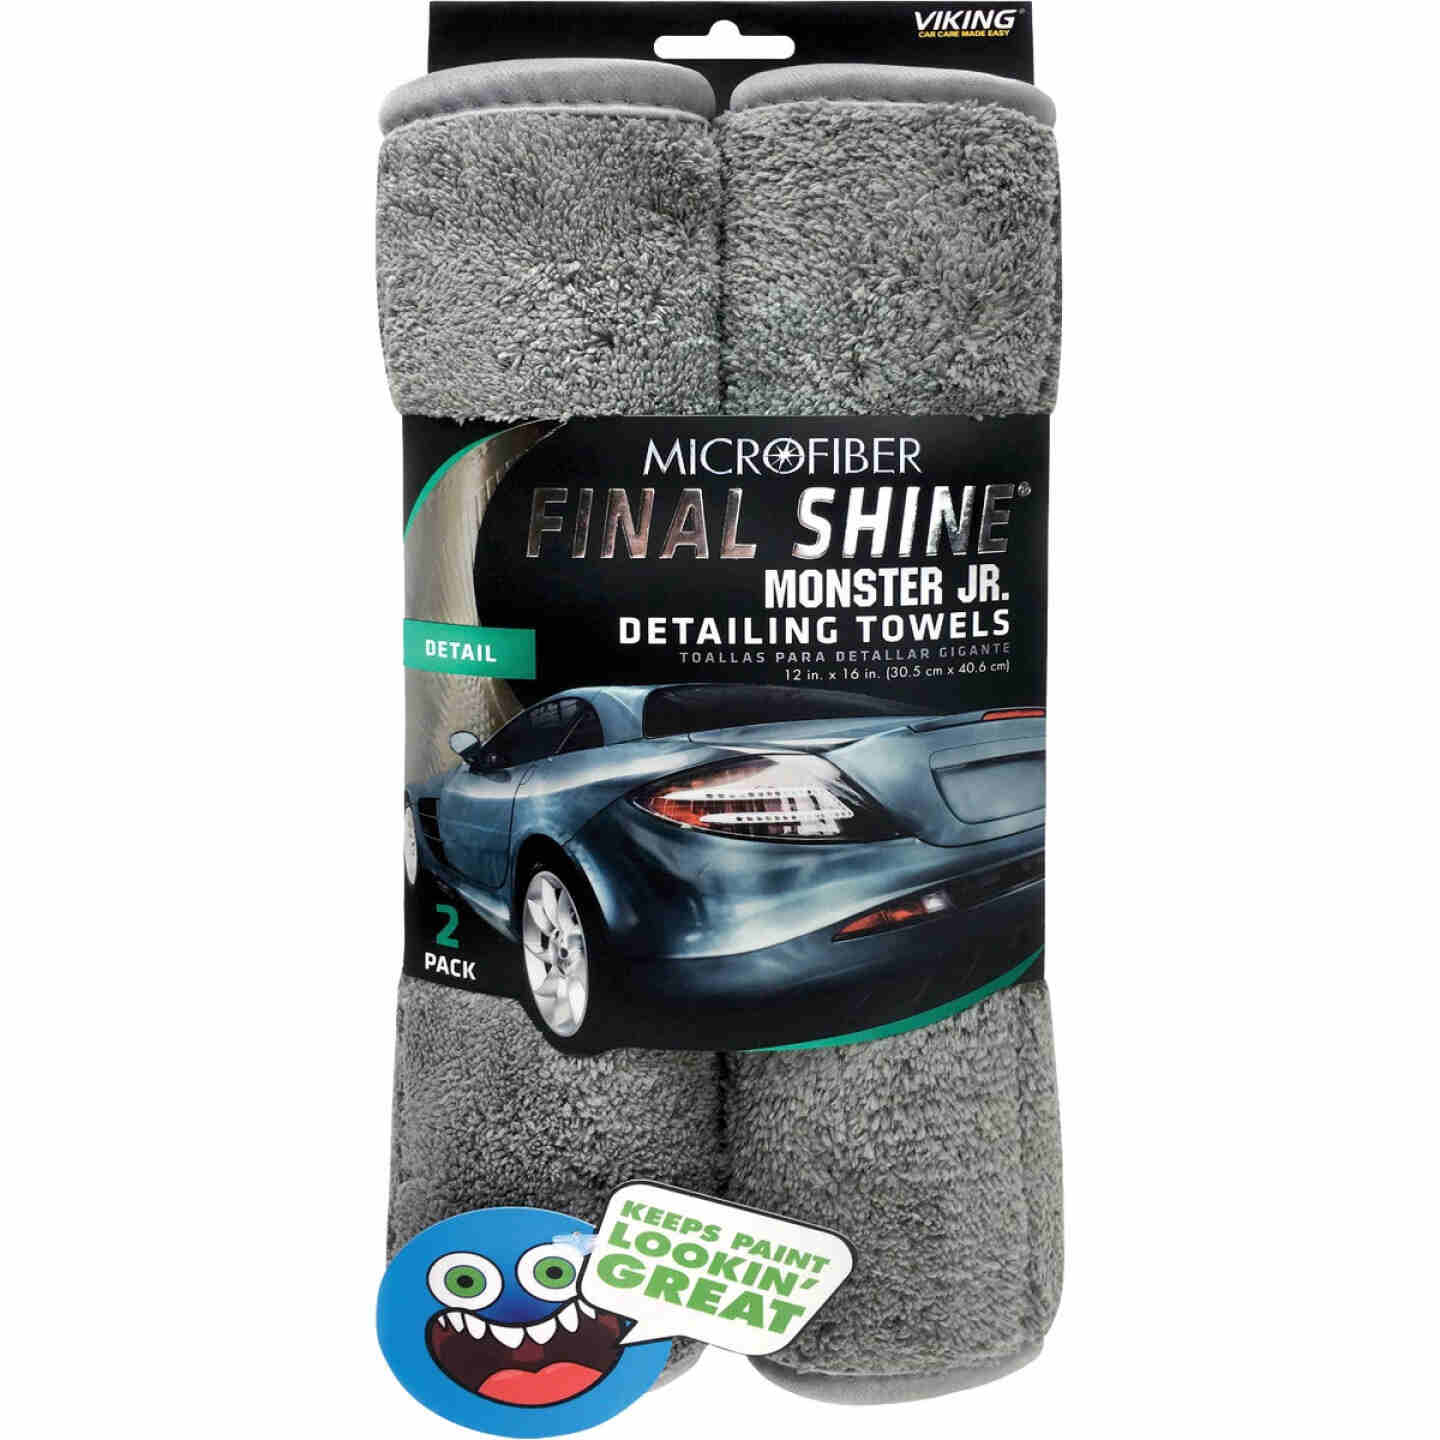 Viking Final Shine Monster Jr. 12 In. x 16 In. Gray Detailing Towel (2-Pack) Image 1